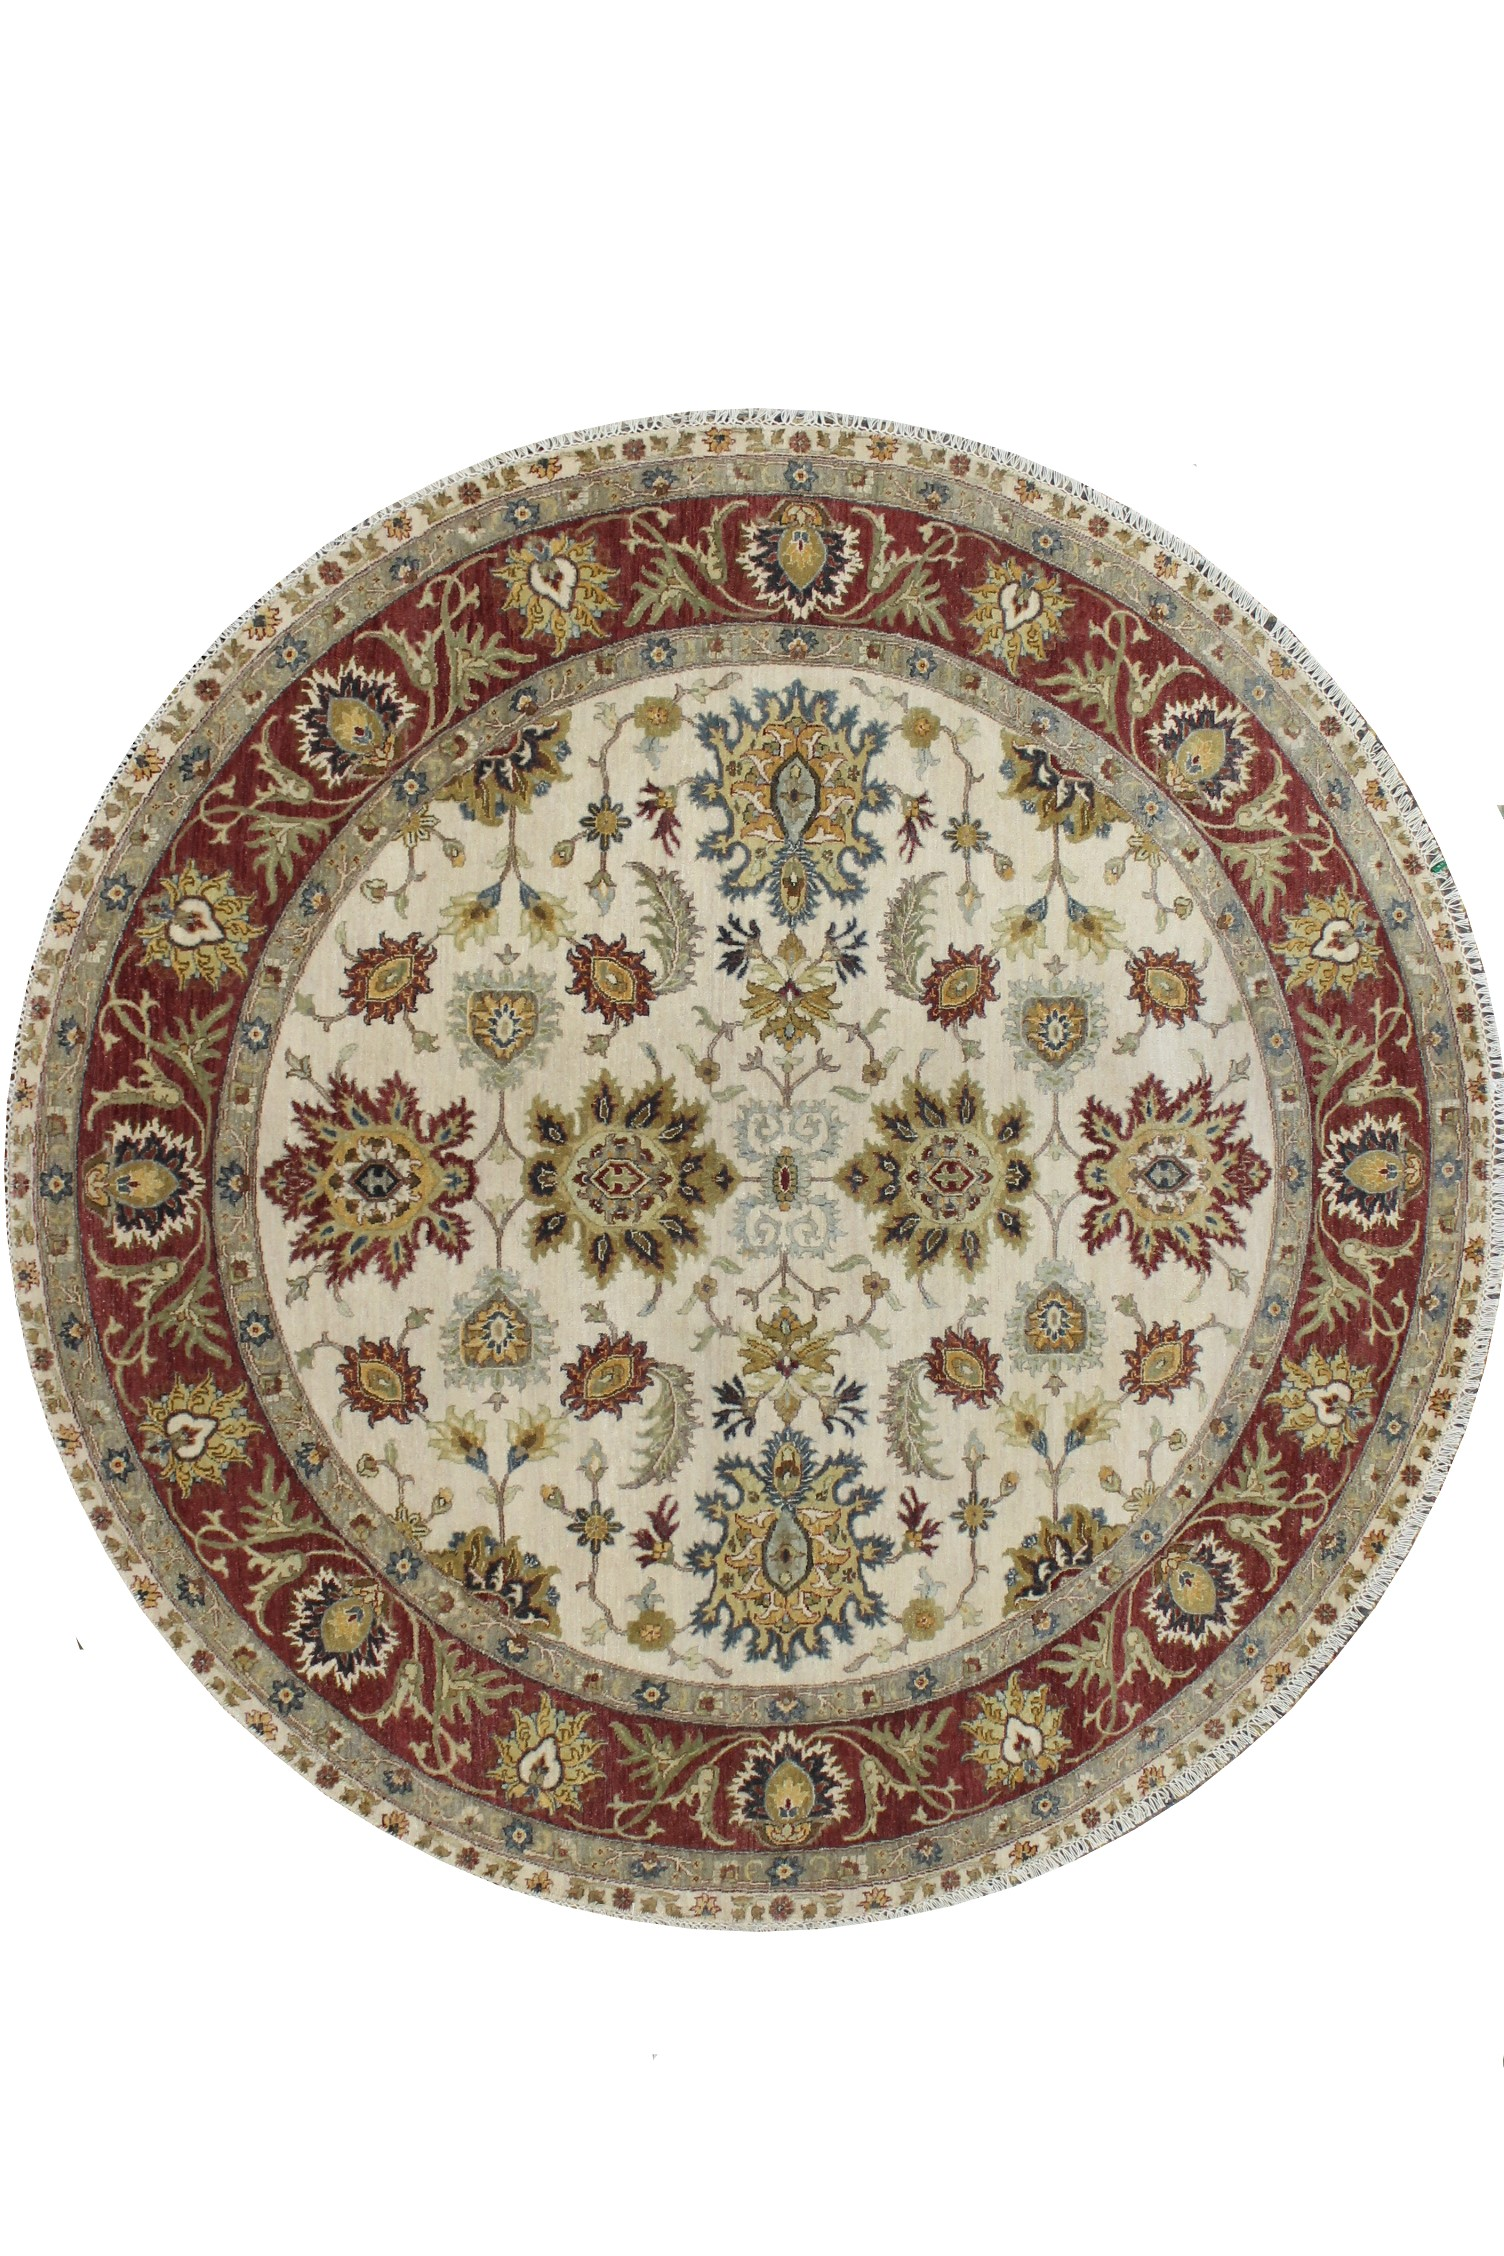 8 ft. Round & Square Traditional Hand Knotted Wool Area Rug - MR023186